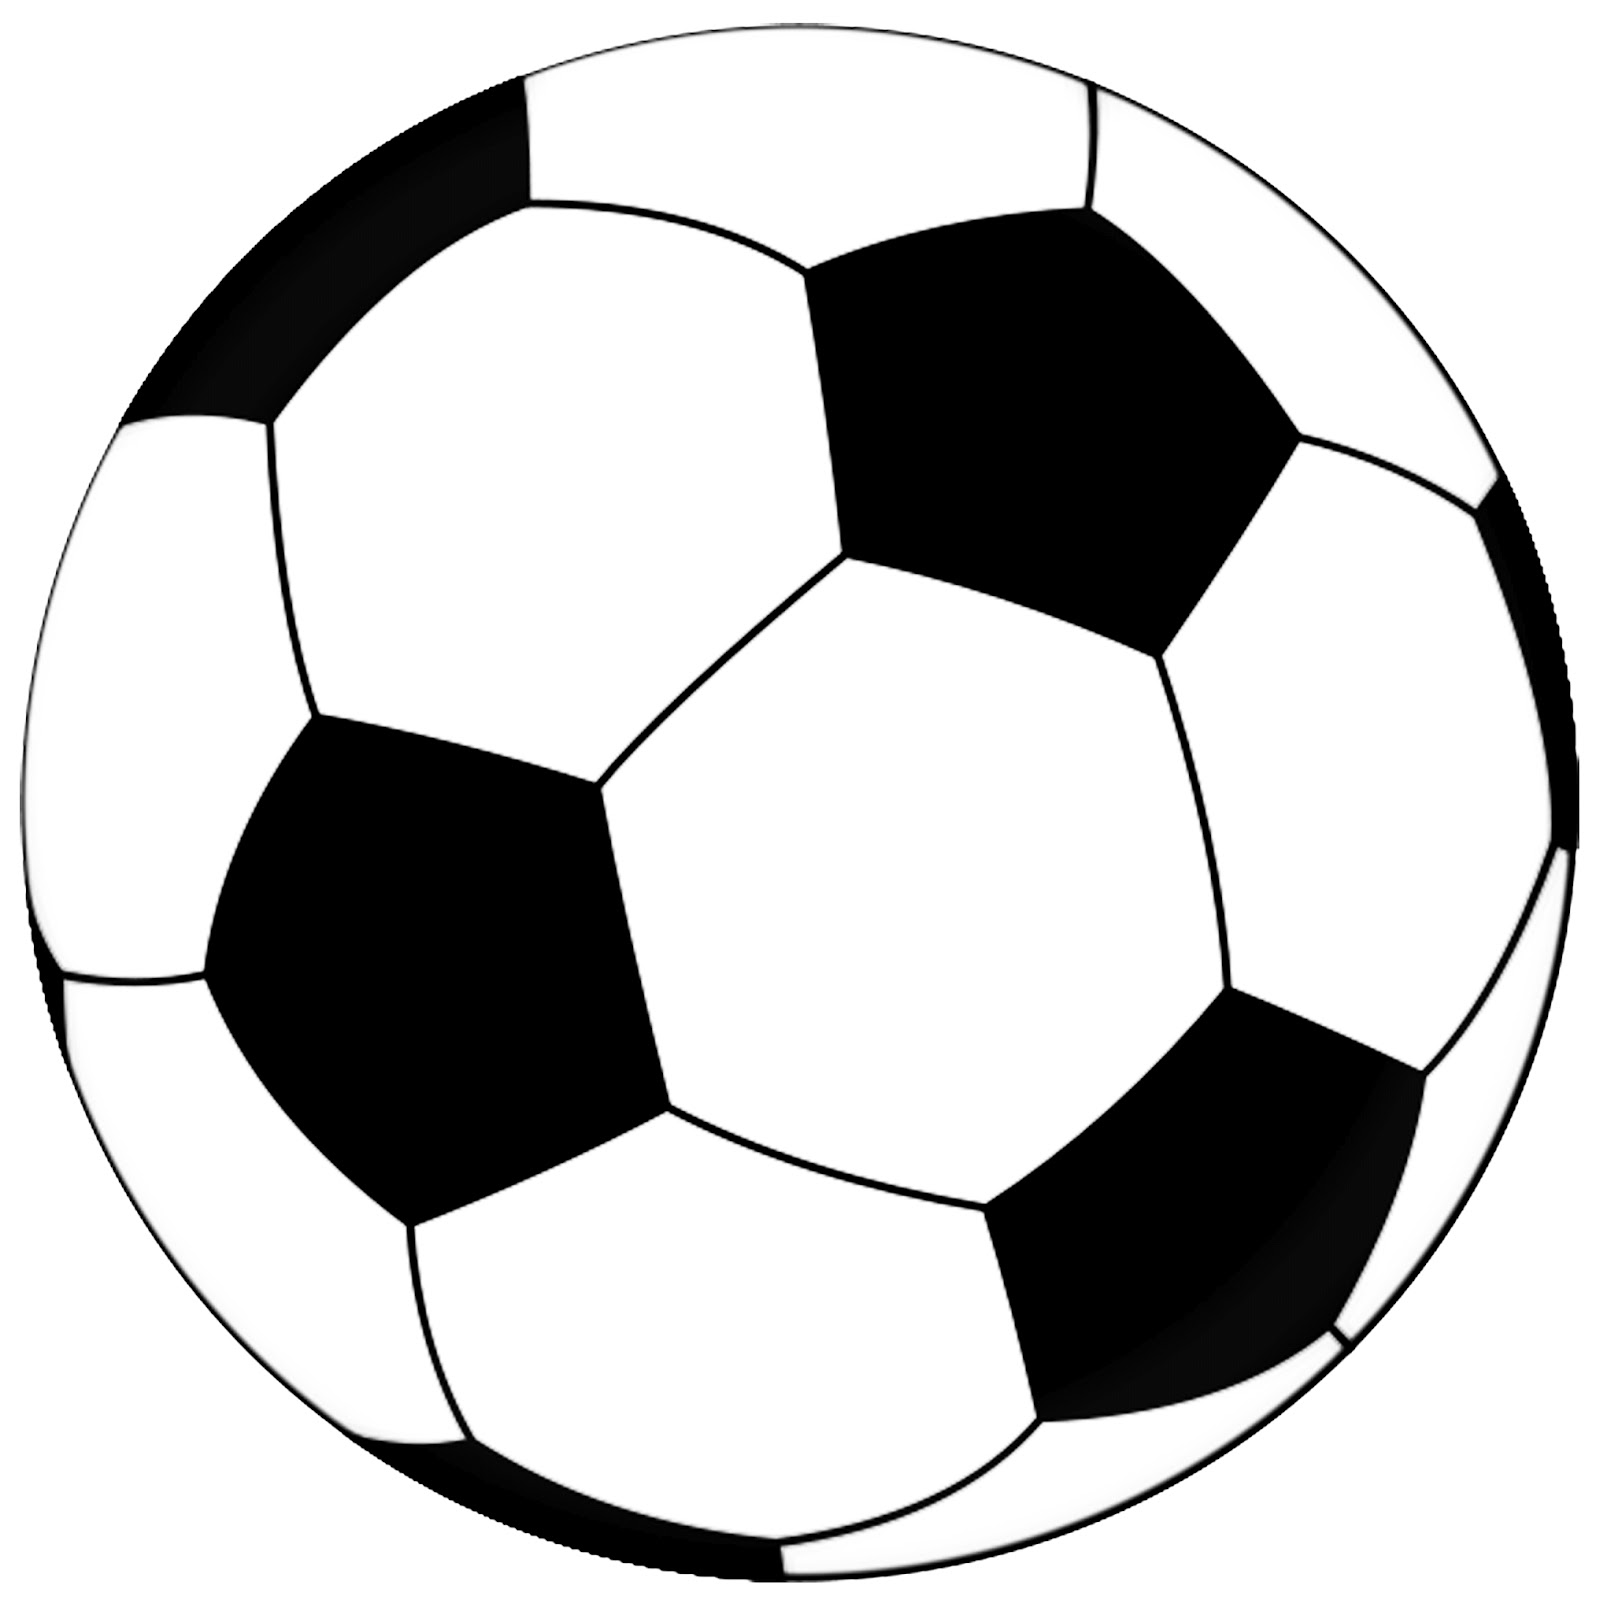 small soccer ball drawing at getdrawings com free for personal use rh getdrawings com soccer ball clip art black and white soccer ball clip art shape of letters